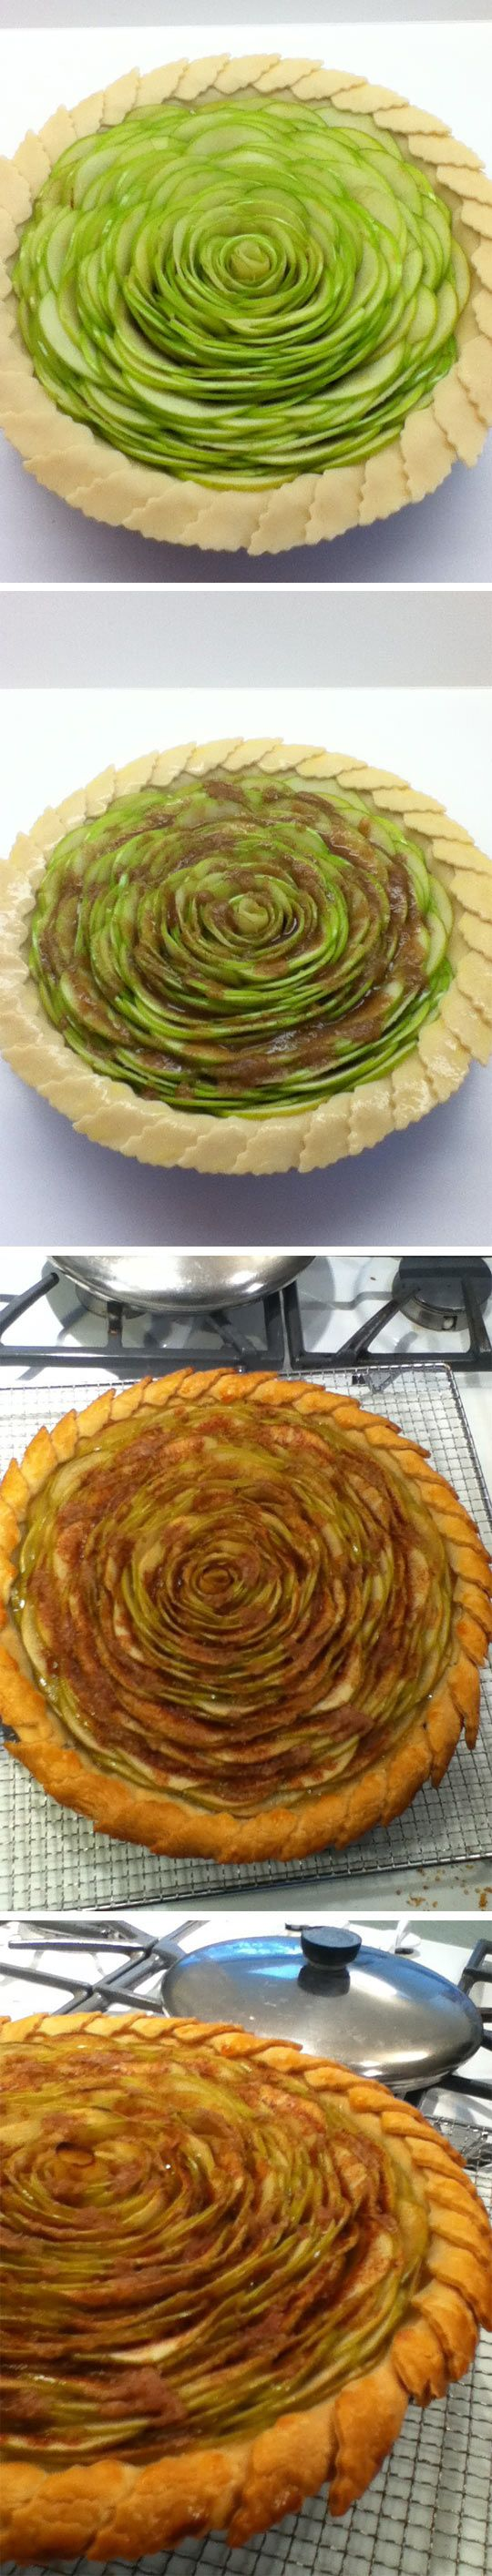 funny-pie-Thanksgiving-apple-flower